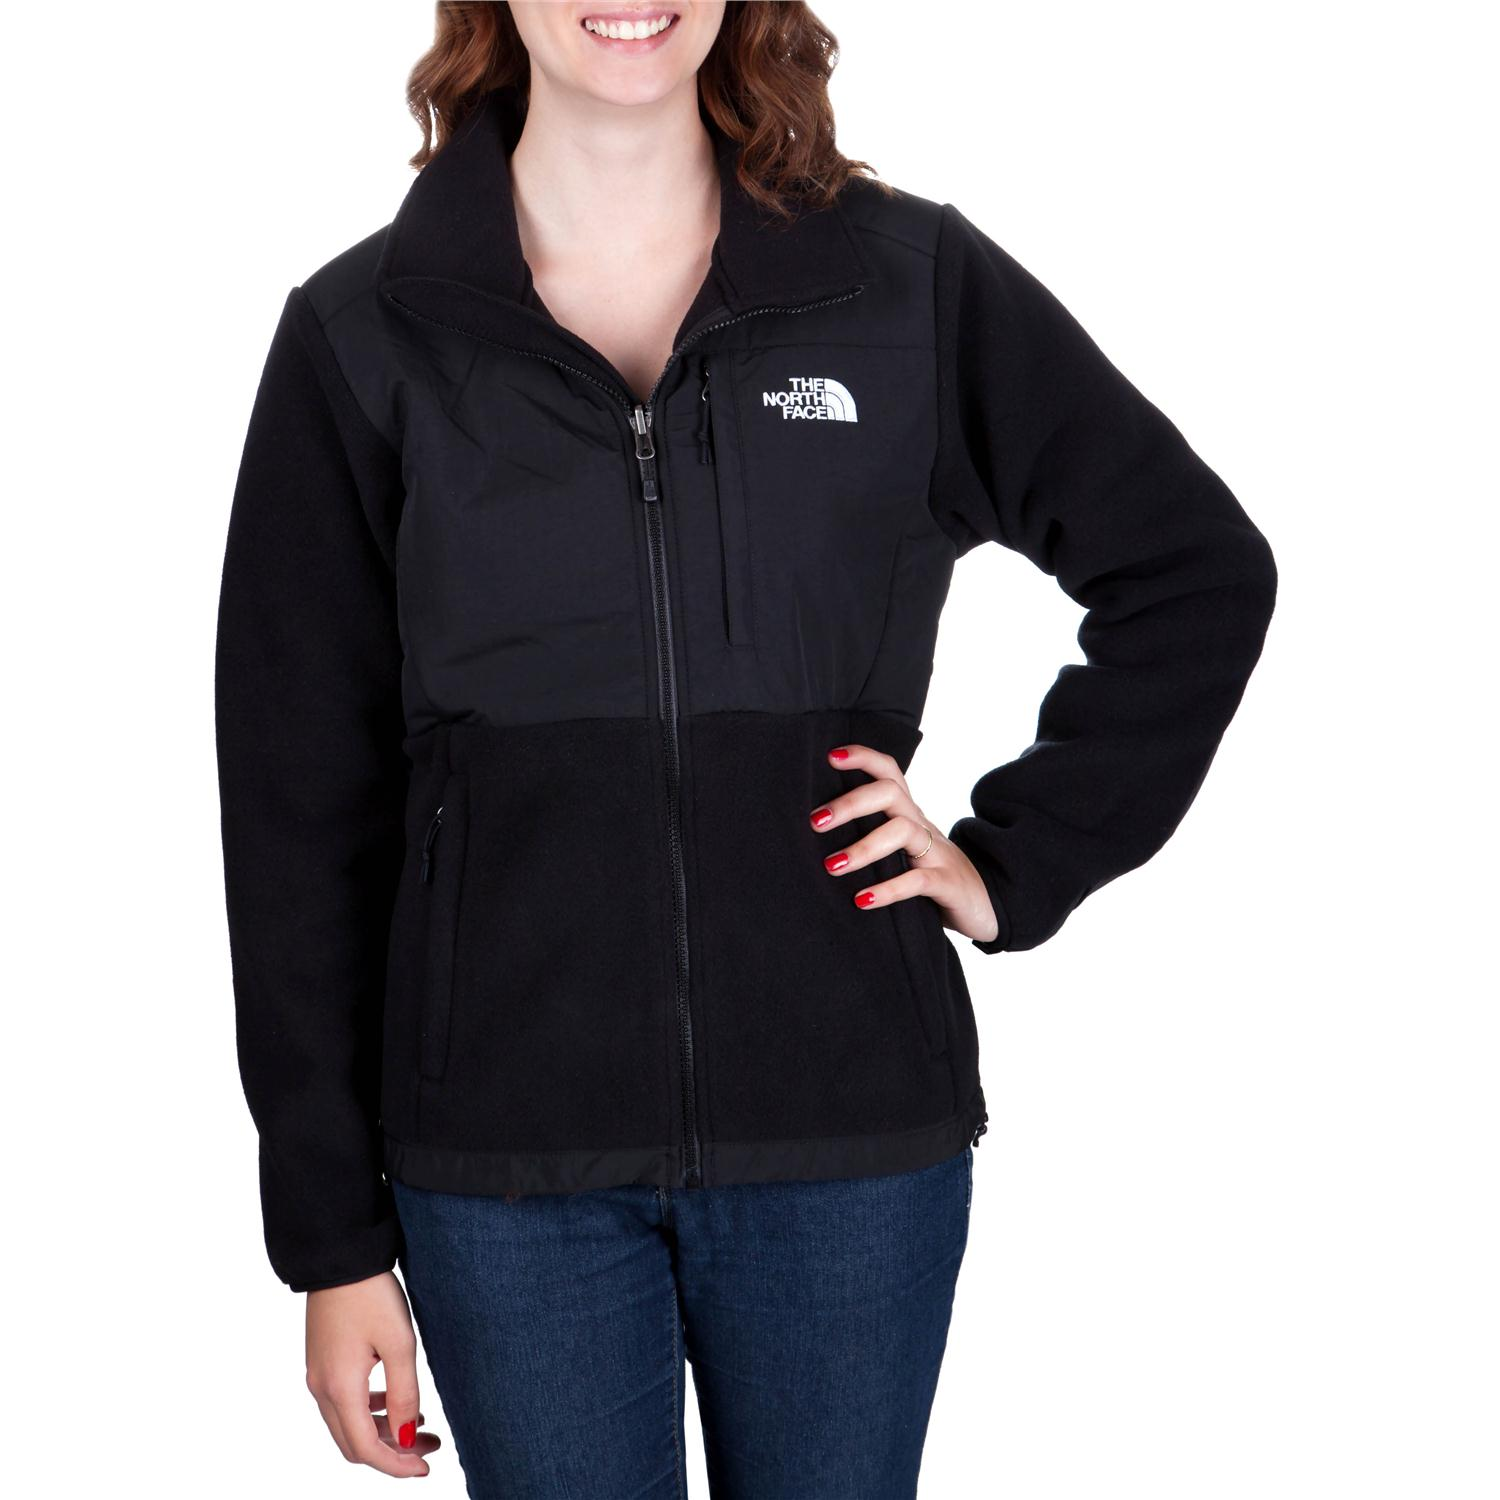 North Face Denali Luxe Northface Discount North Face Denali Discount